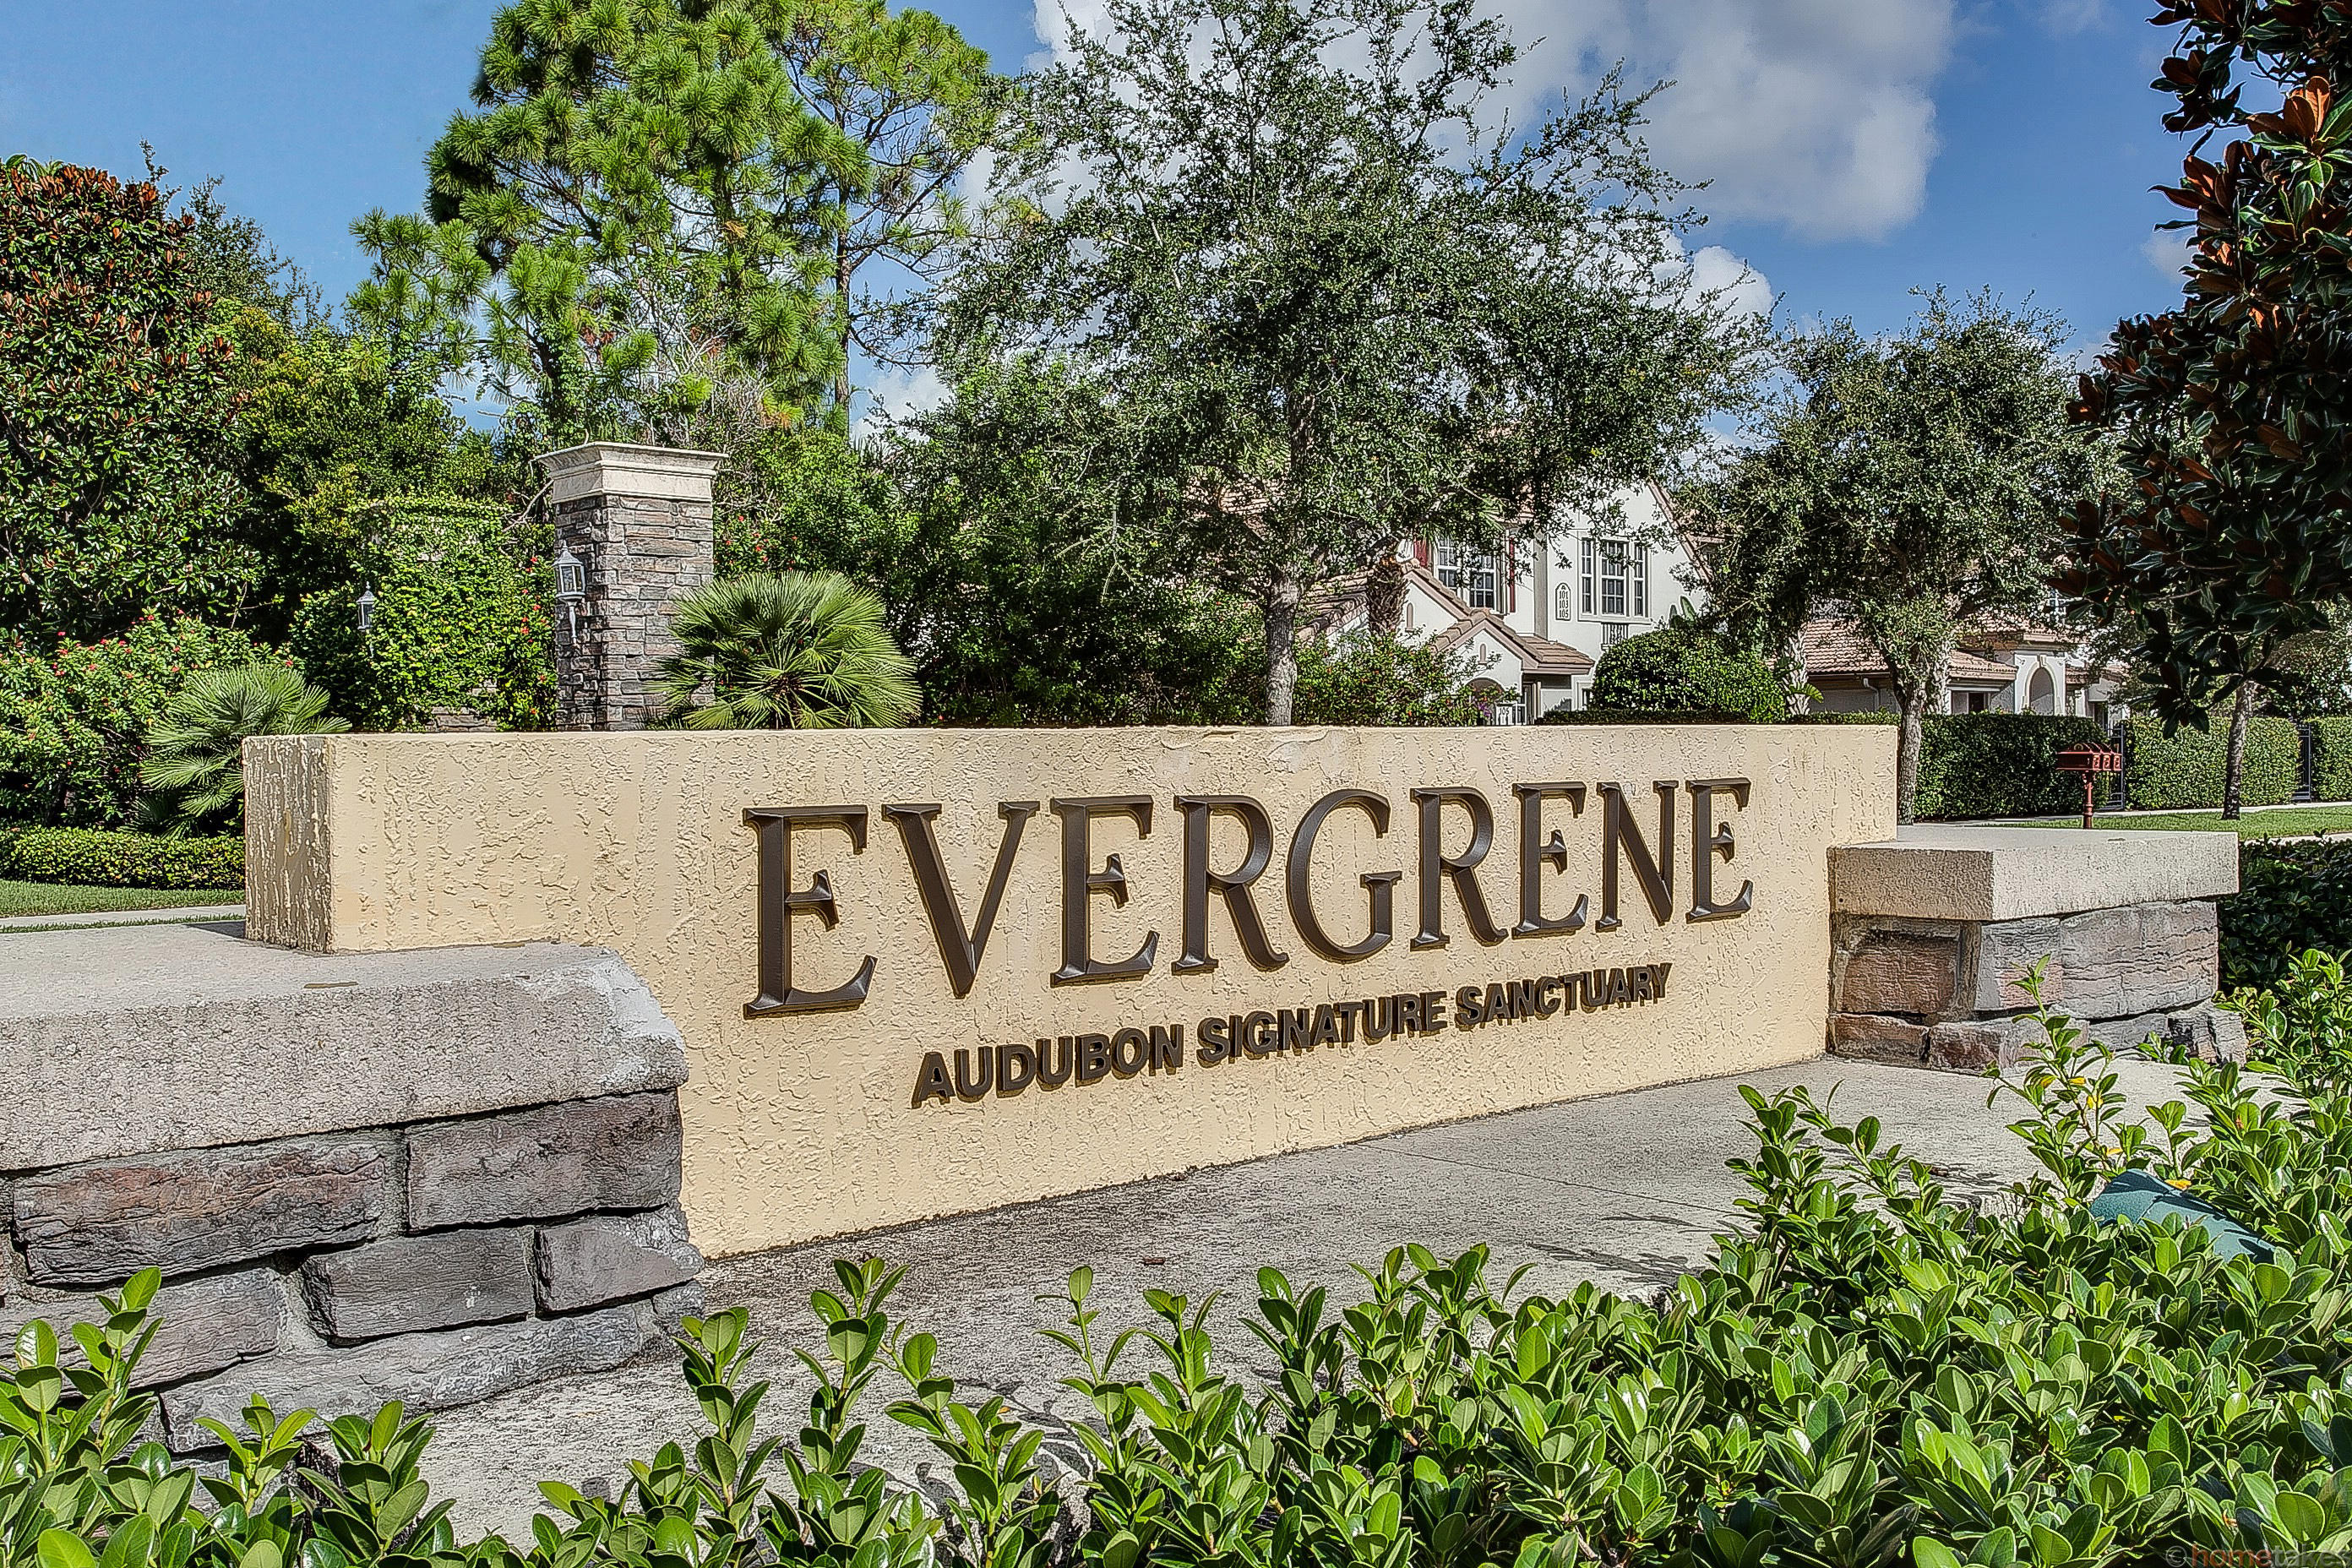 EVERGRENE PROPERTY